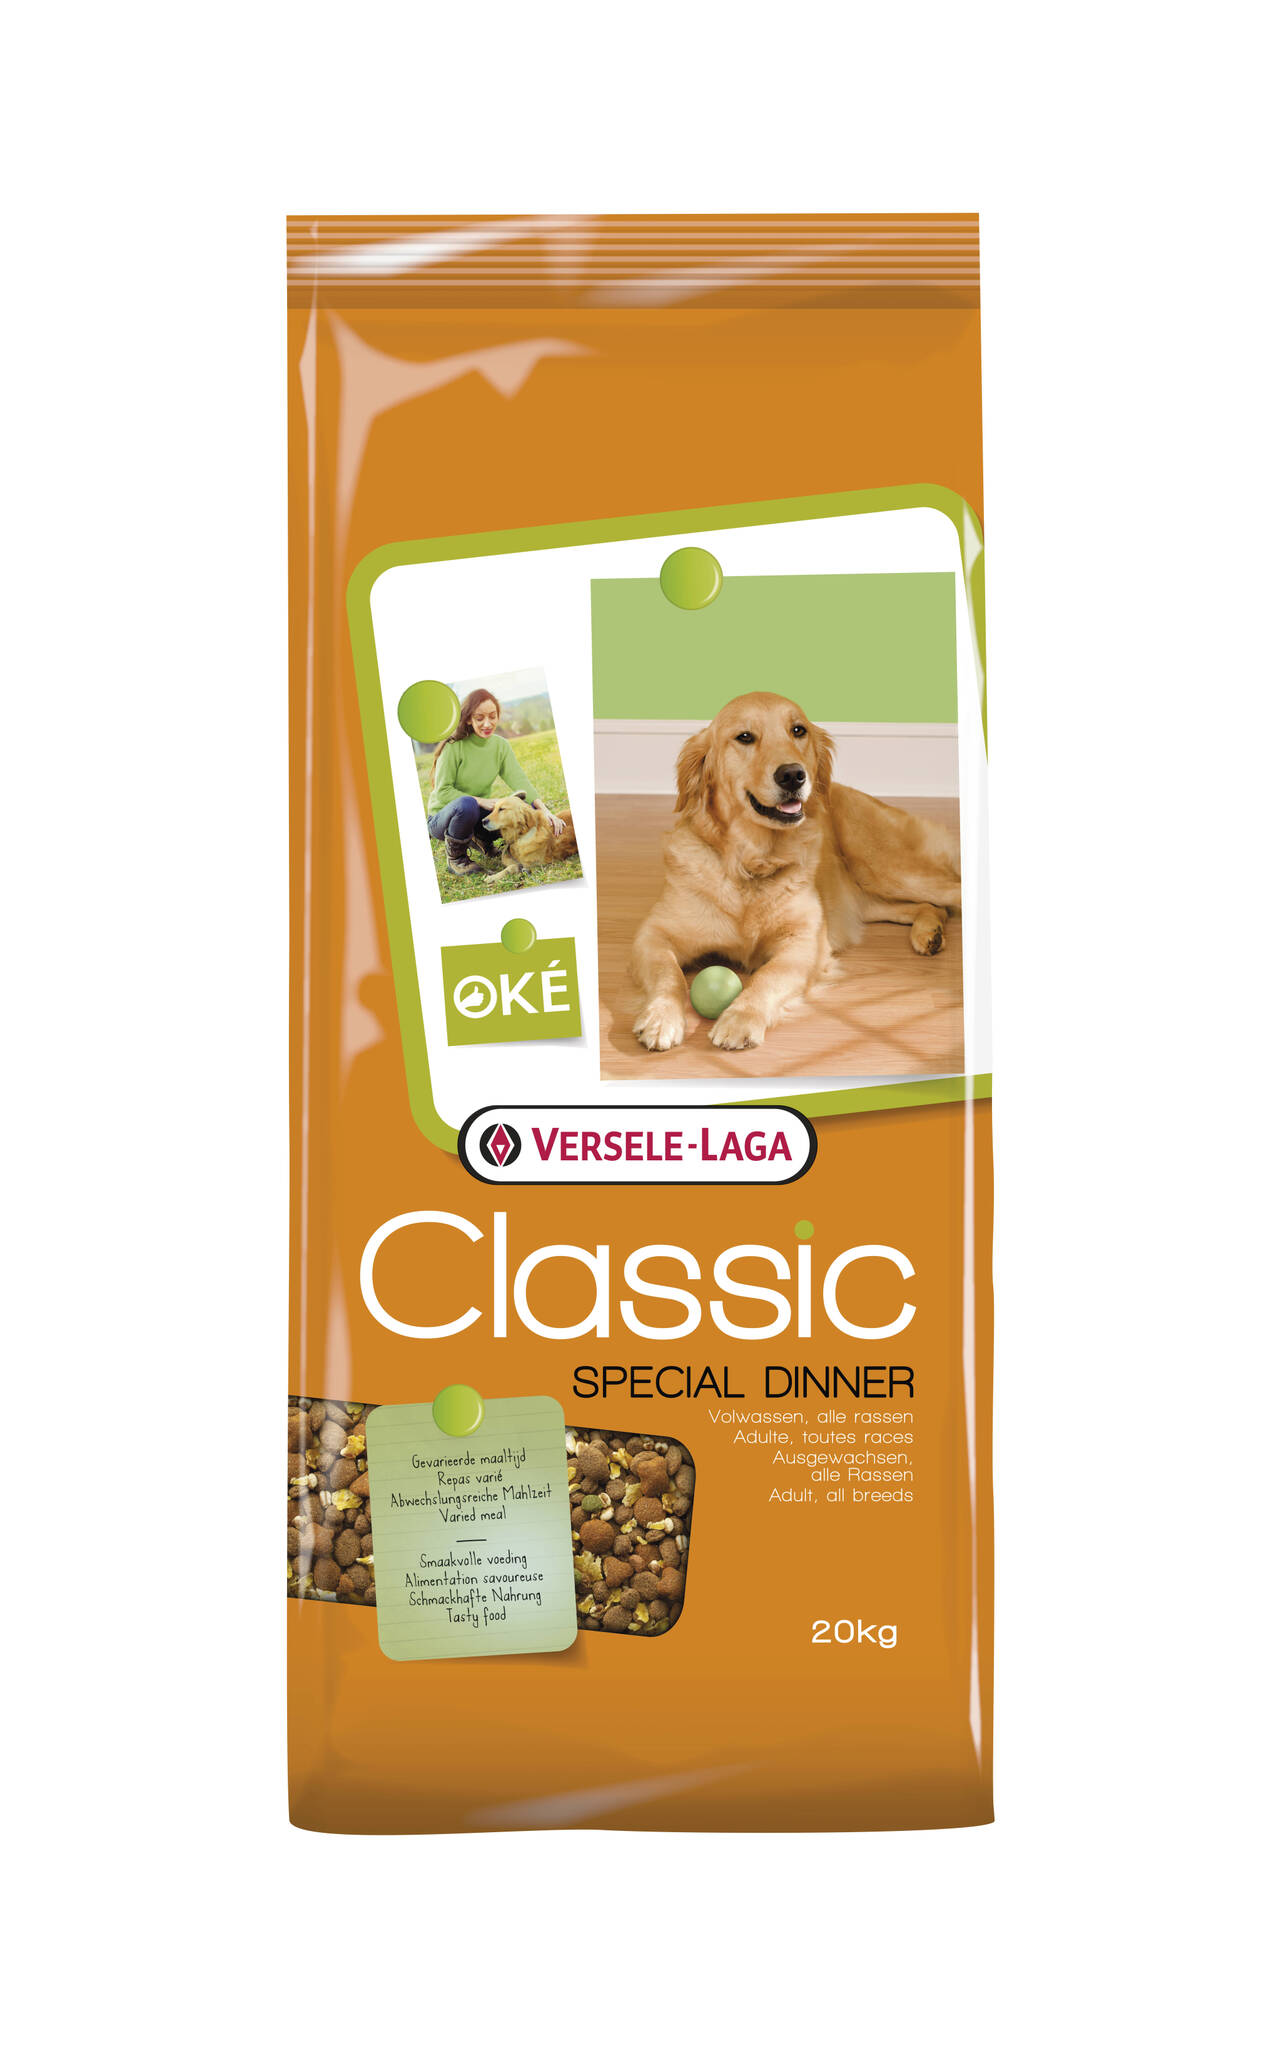 Classic Special Dinner Adult All breeds 20kg